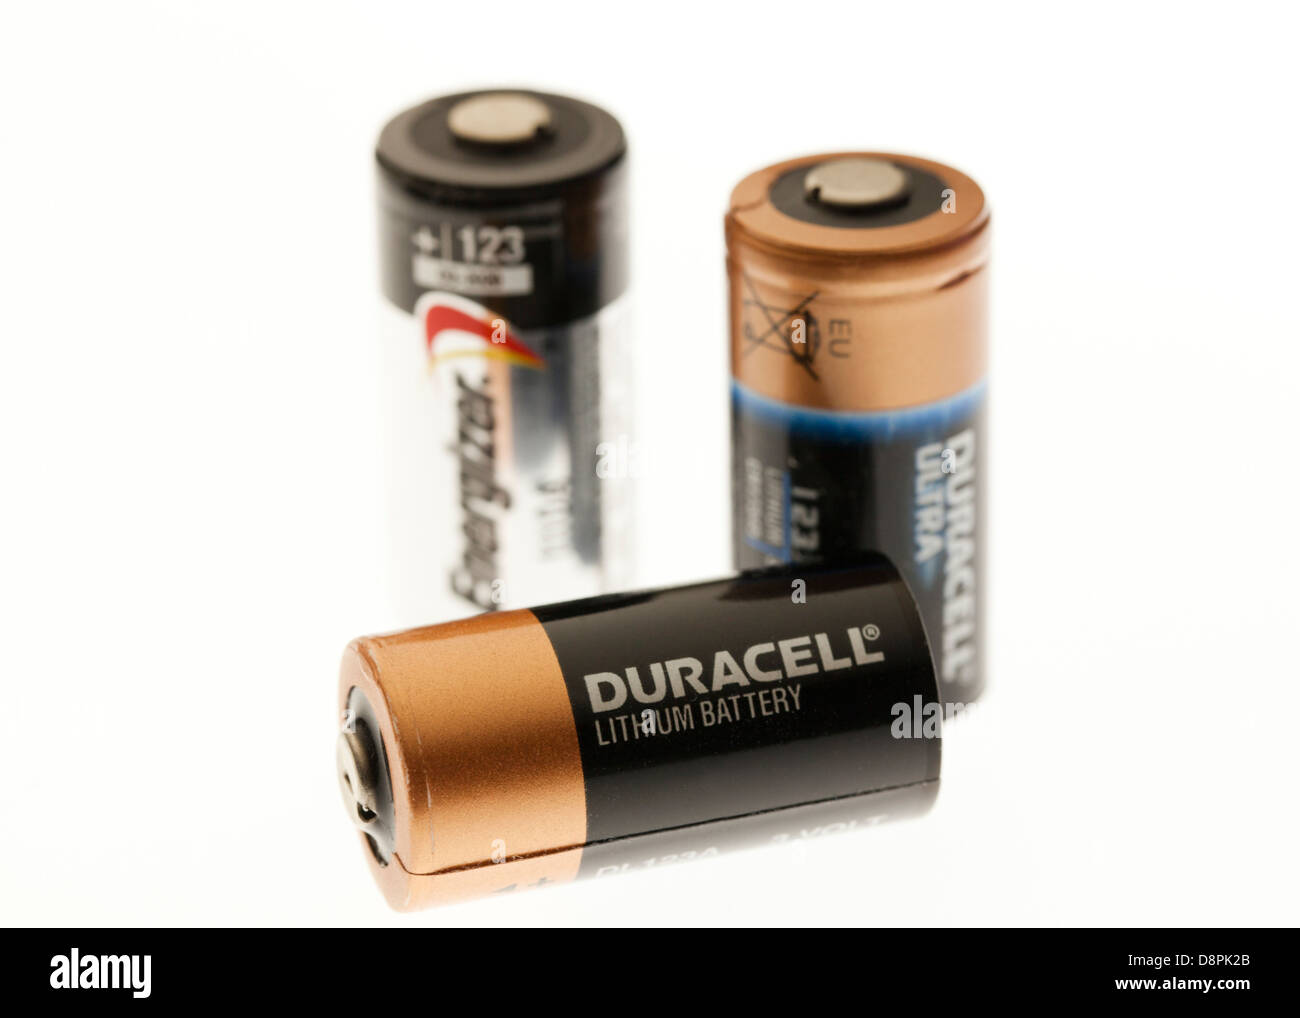 CR-123 lithium 3V batteries closeup - Stock Image